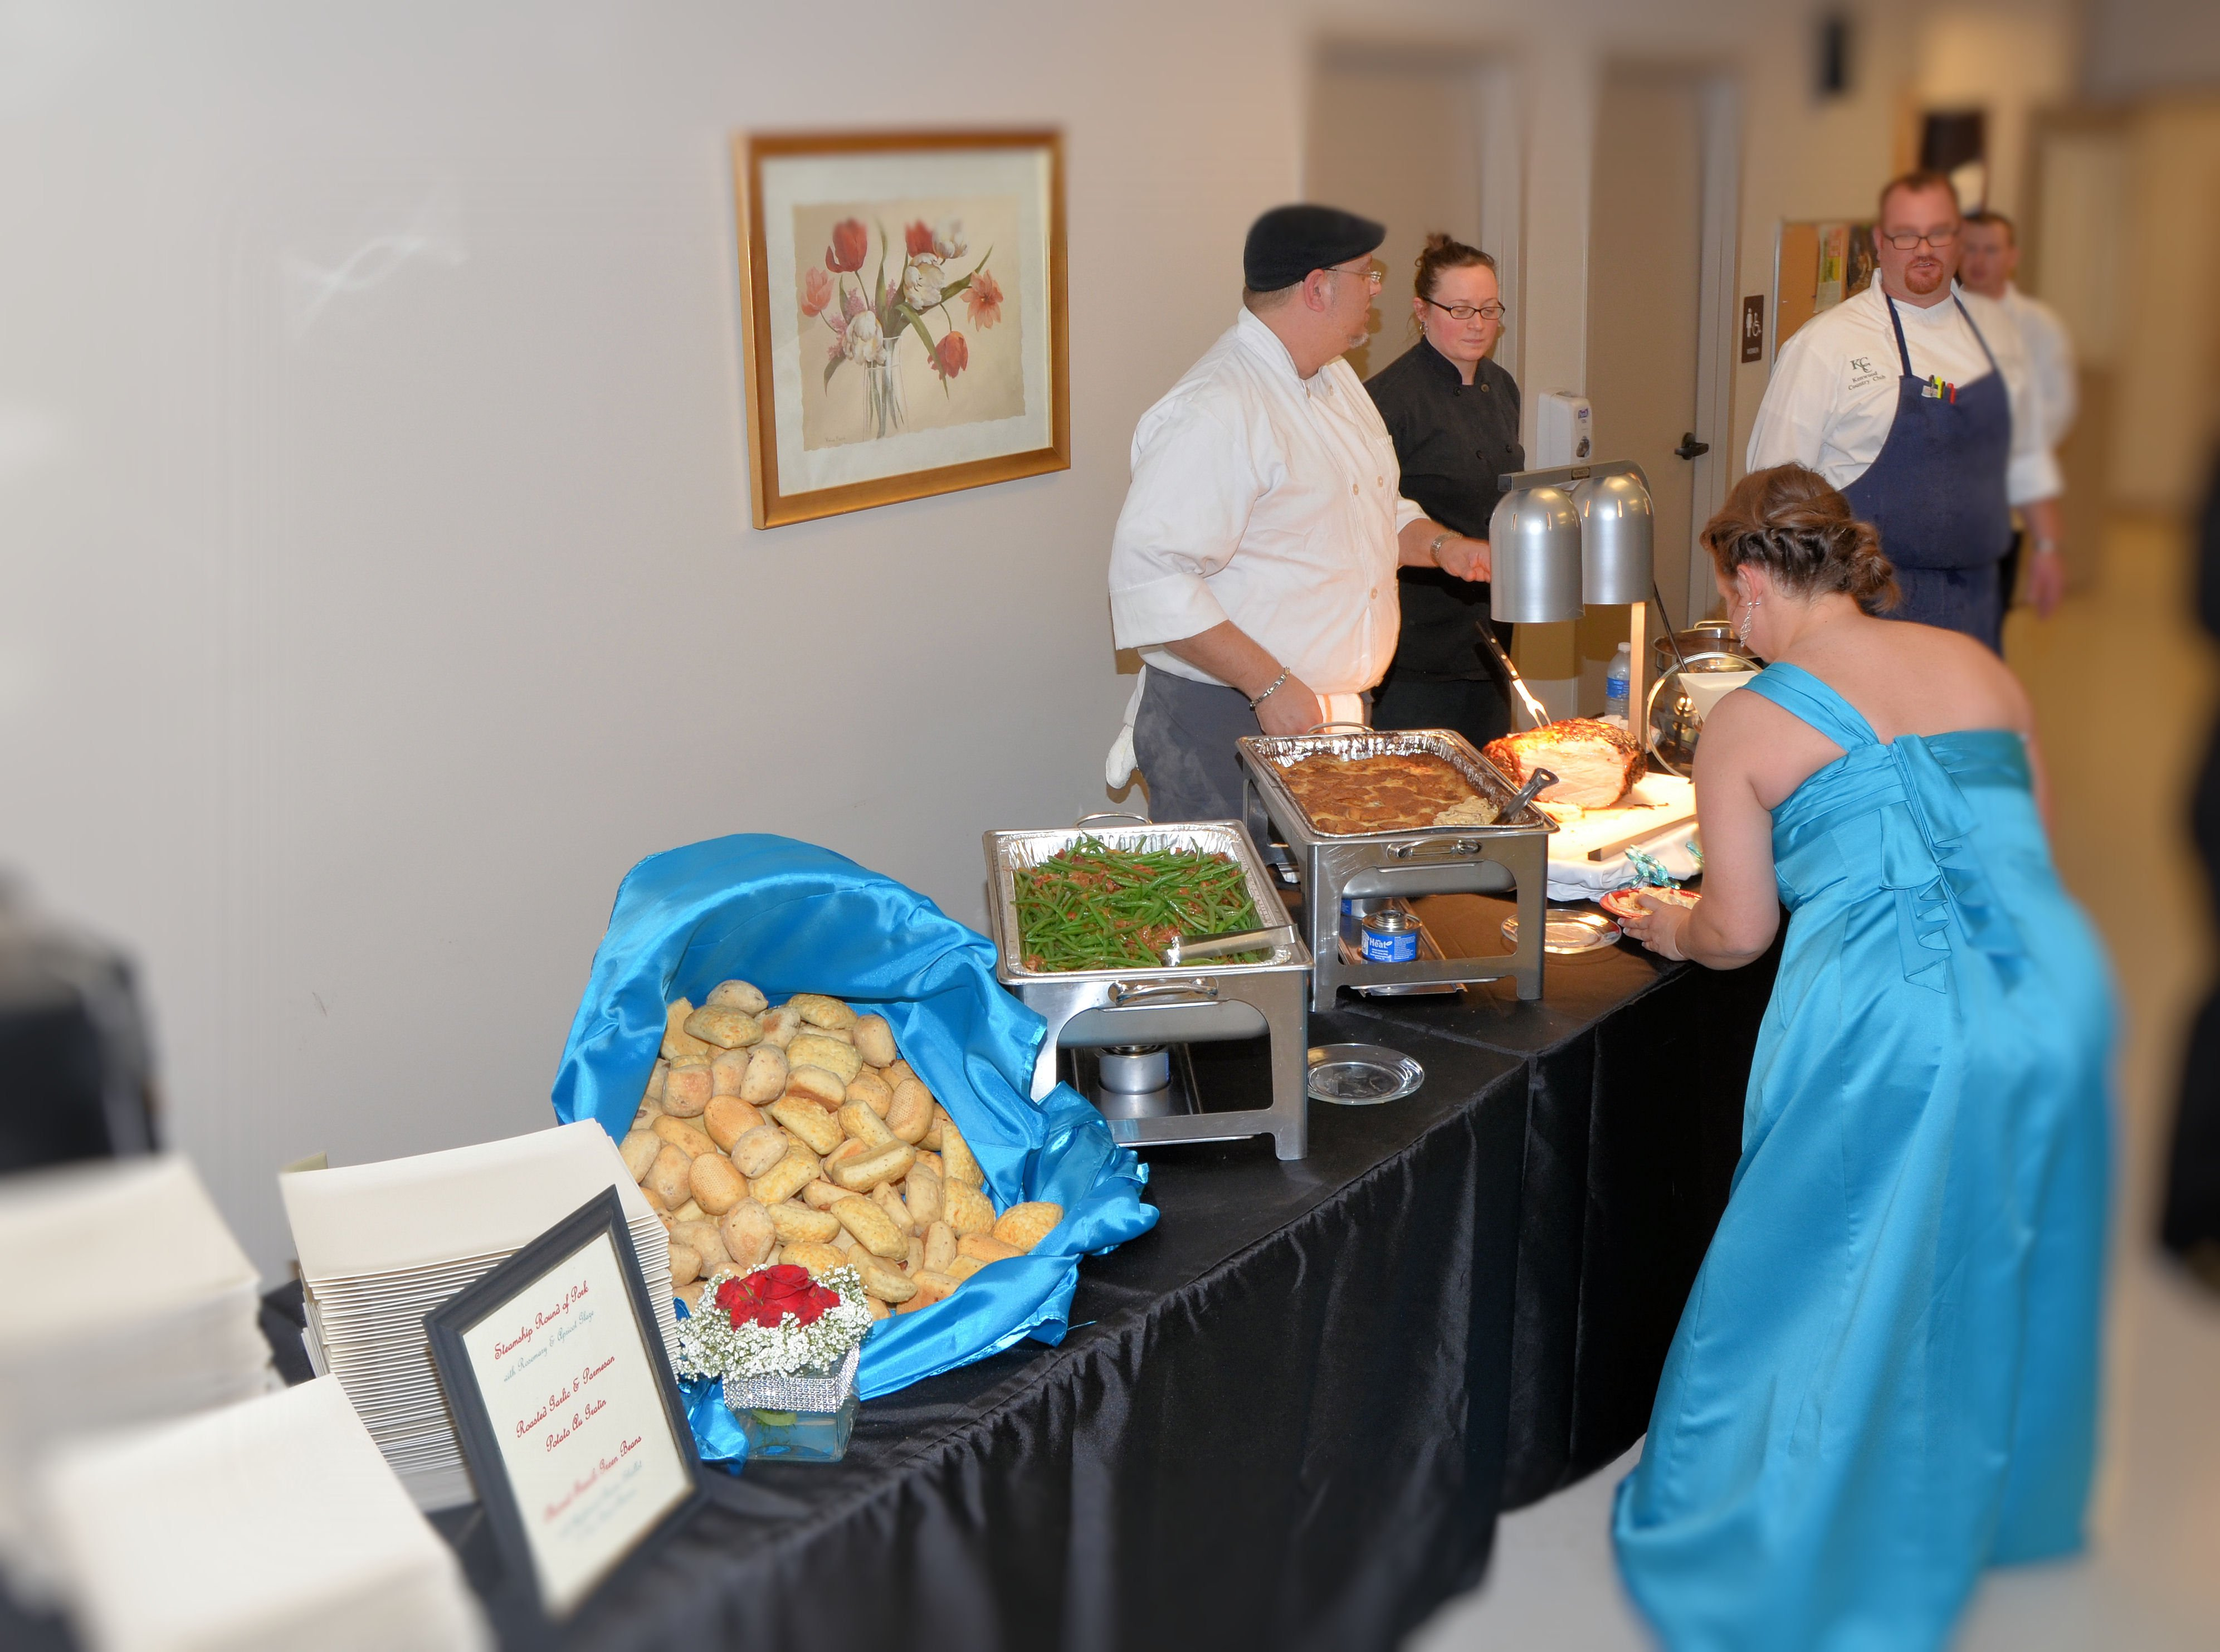 Golden Rule Catering is proud to be the exclusive caterer for The Lodge at Clermont.